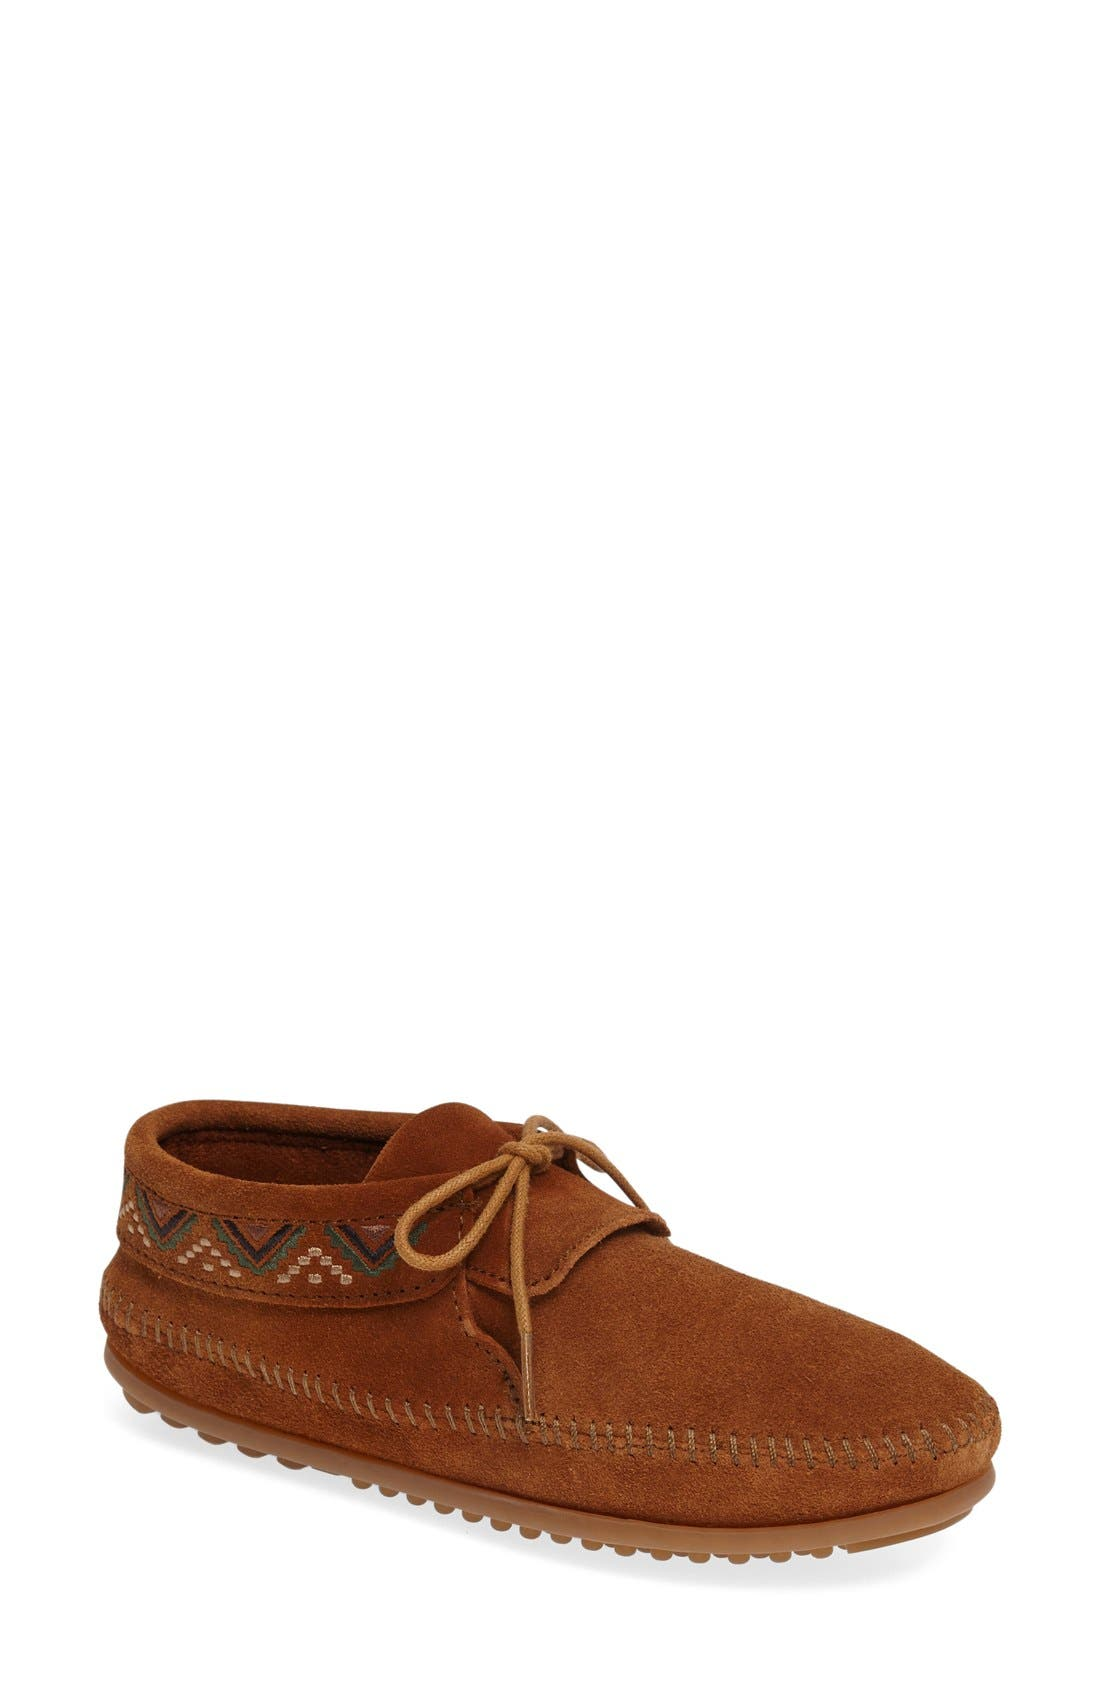 Mosaic Embroidered Moccasin,                         Main,                         color, Brown Suede